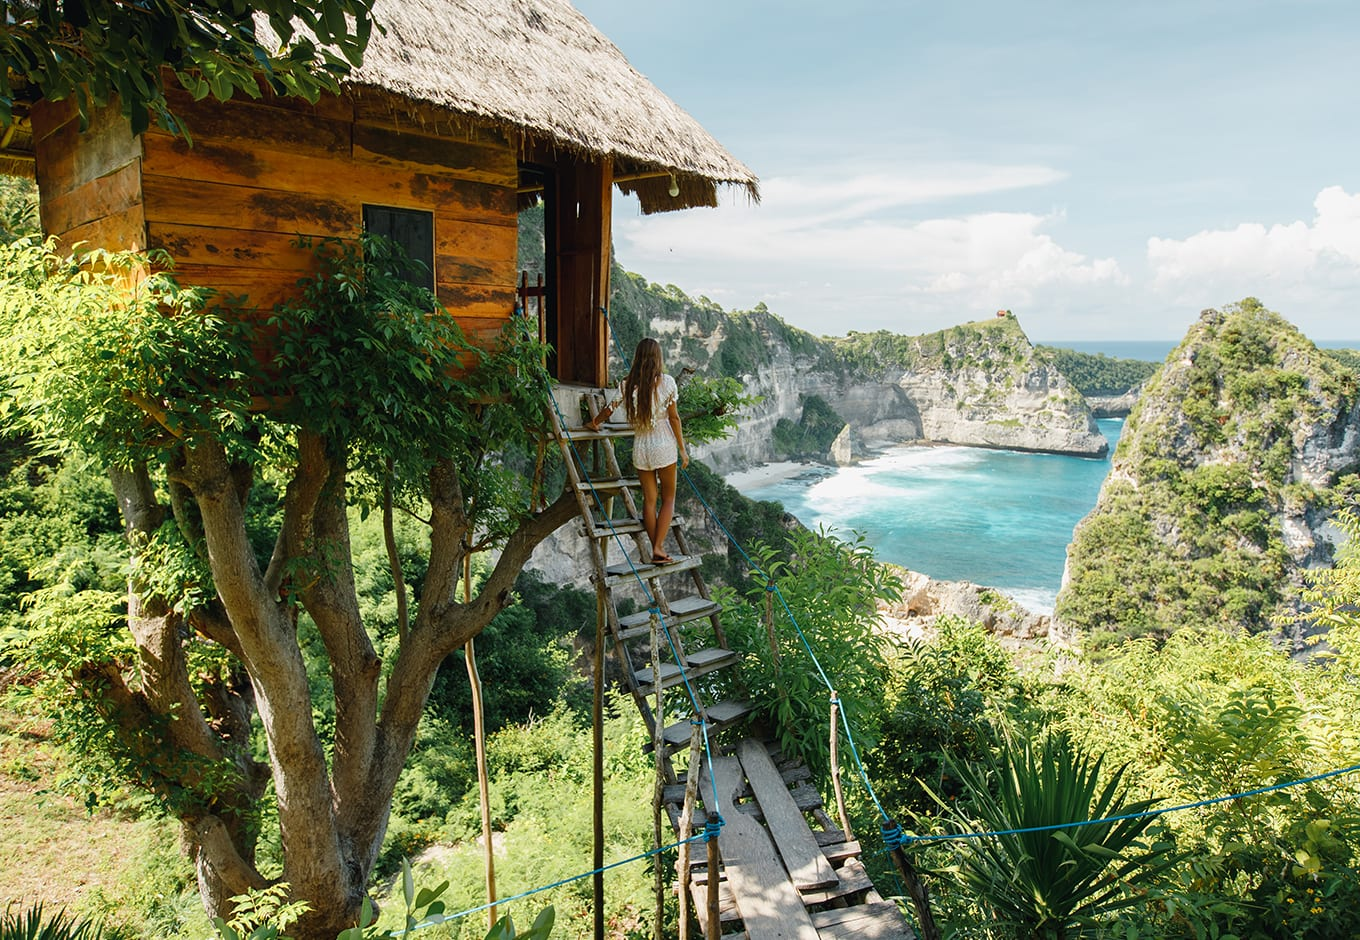 Change in Luxury Travel is Greening Hospitality Industry